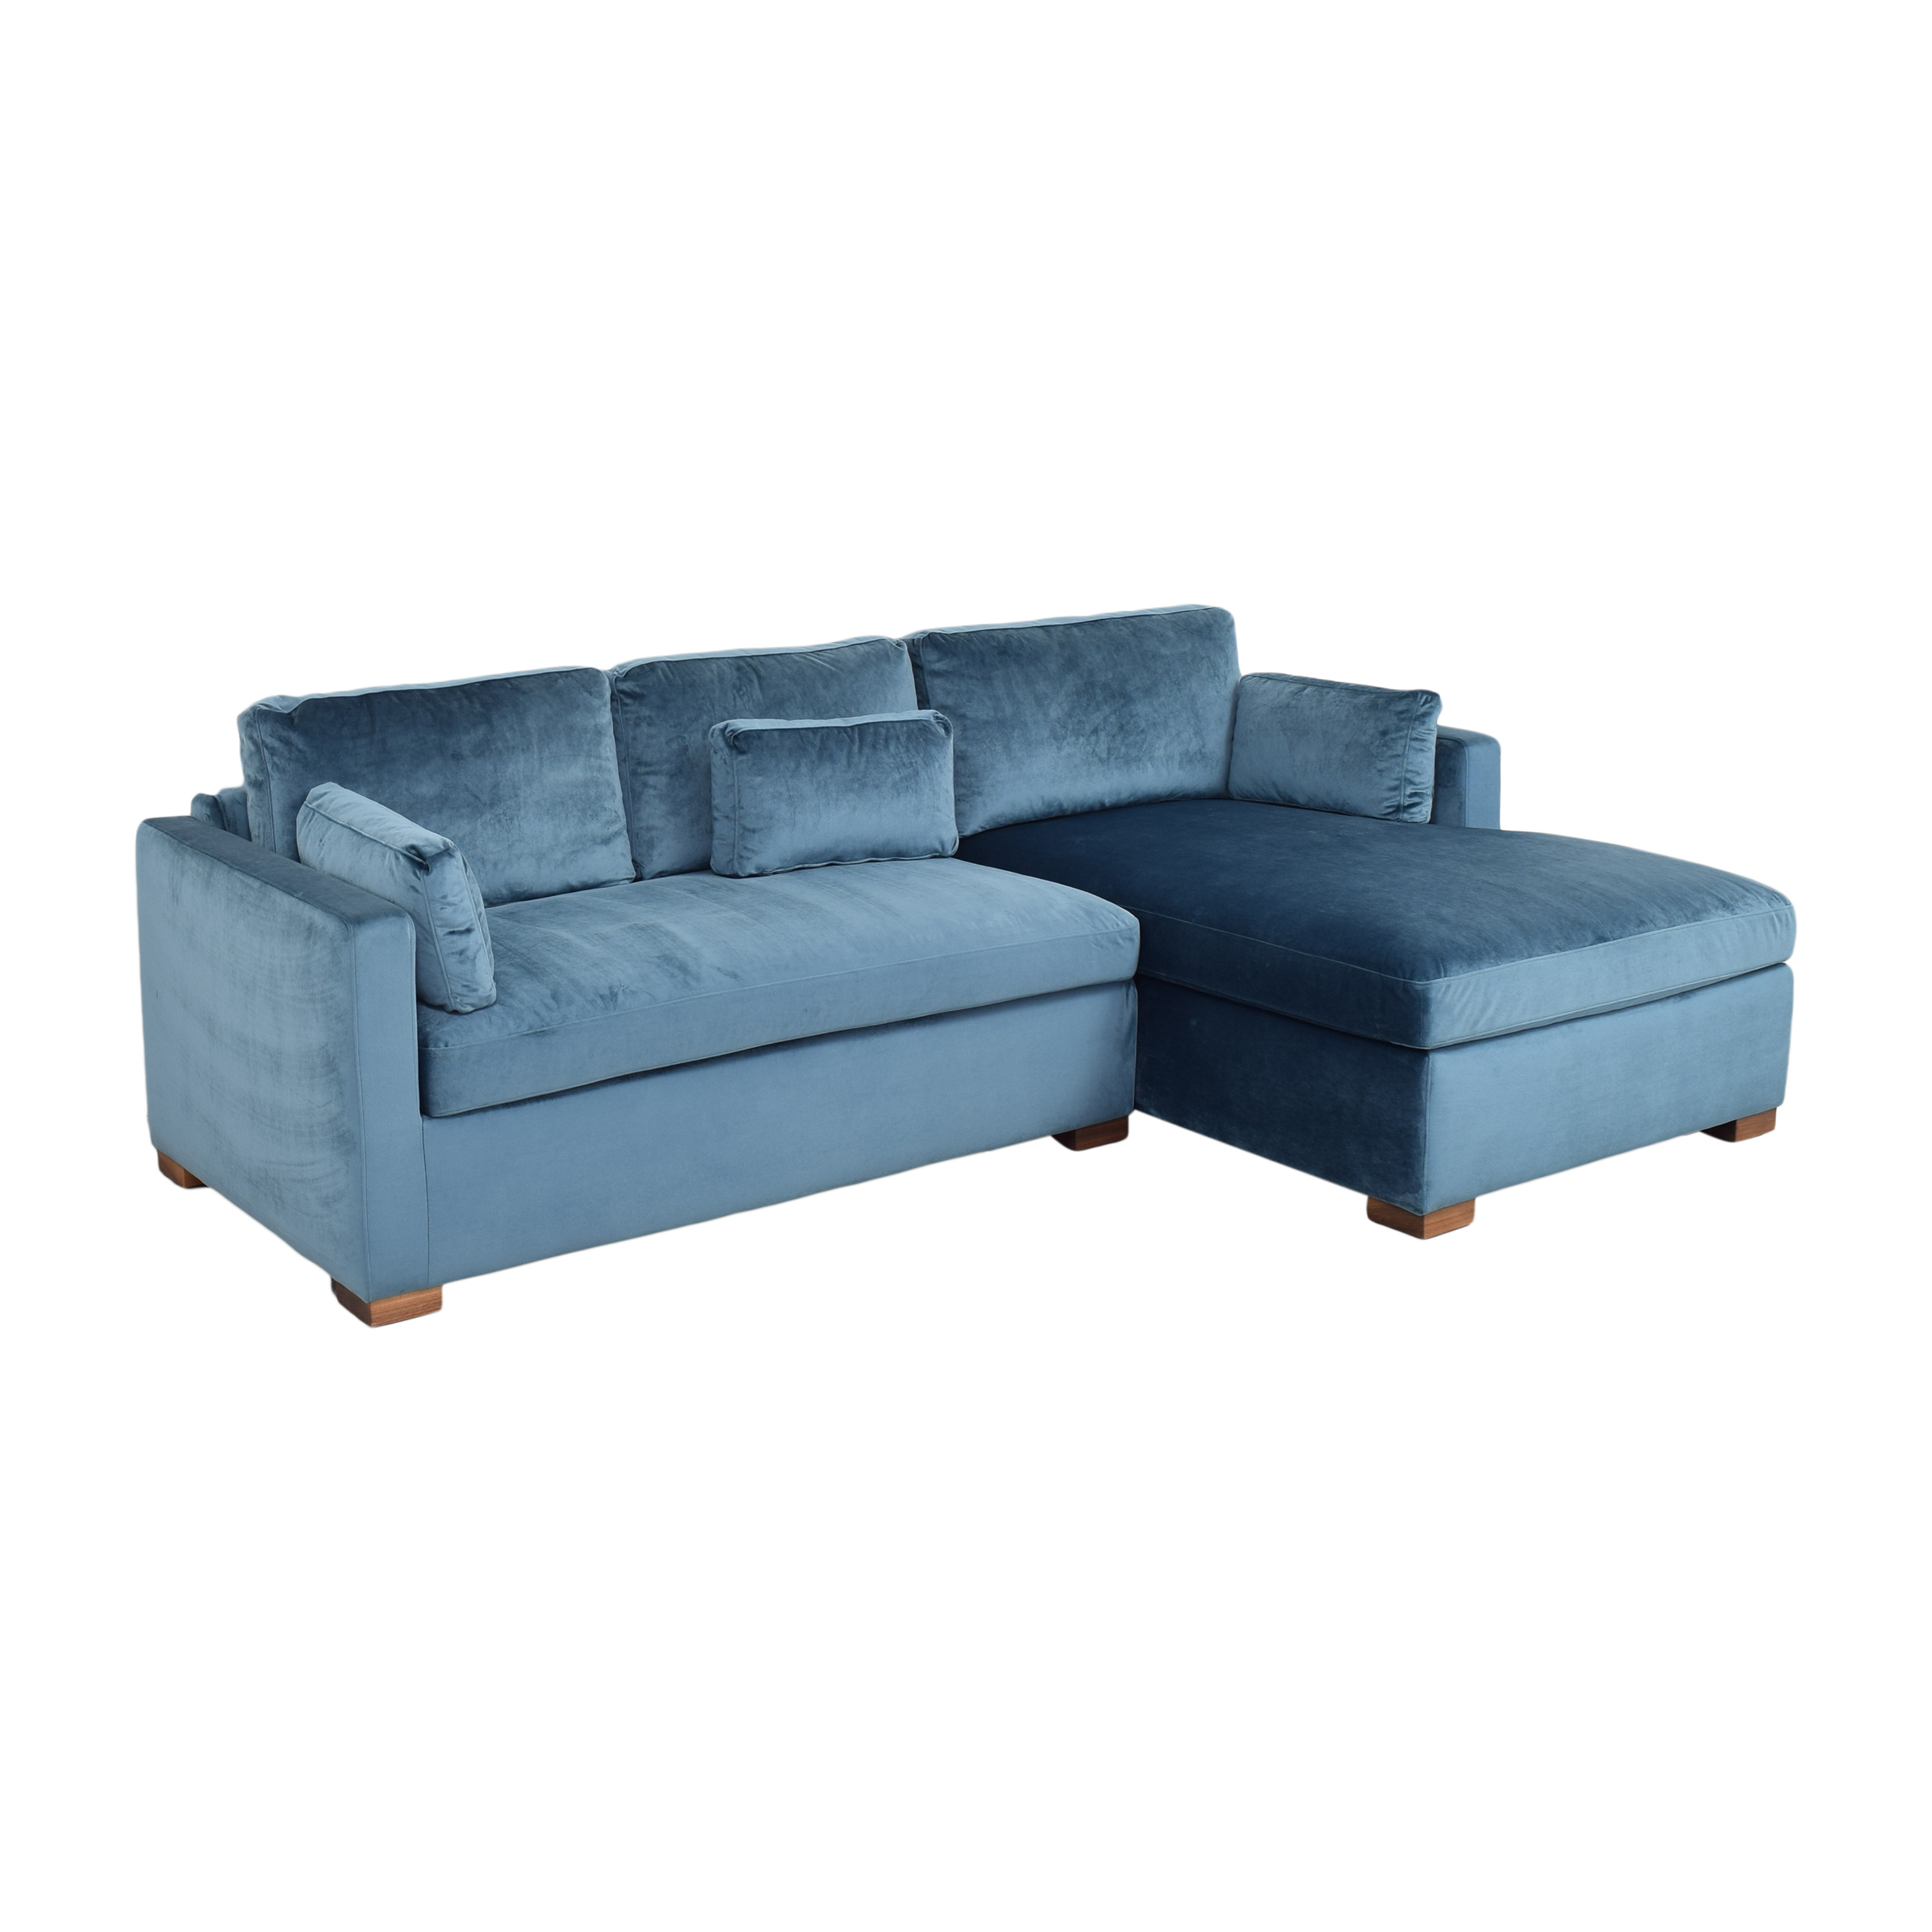 Interior Define Interior Define Charly Sectional Sofa with Chaise blue